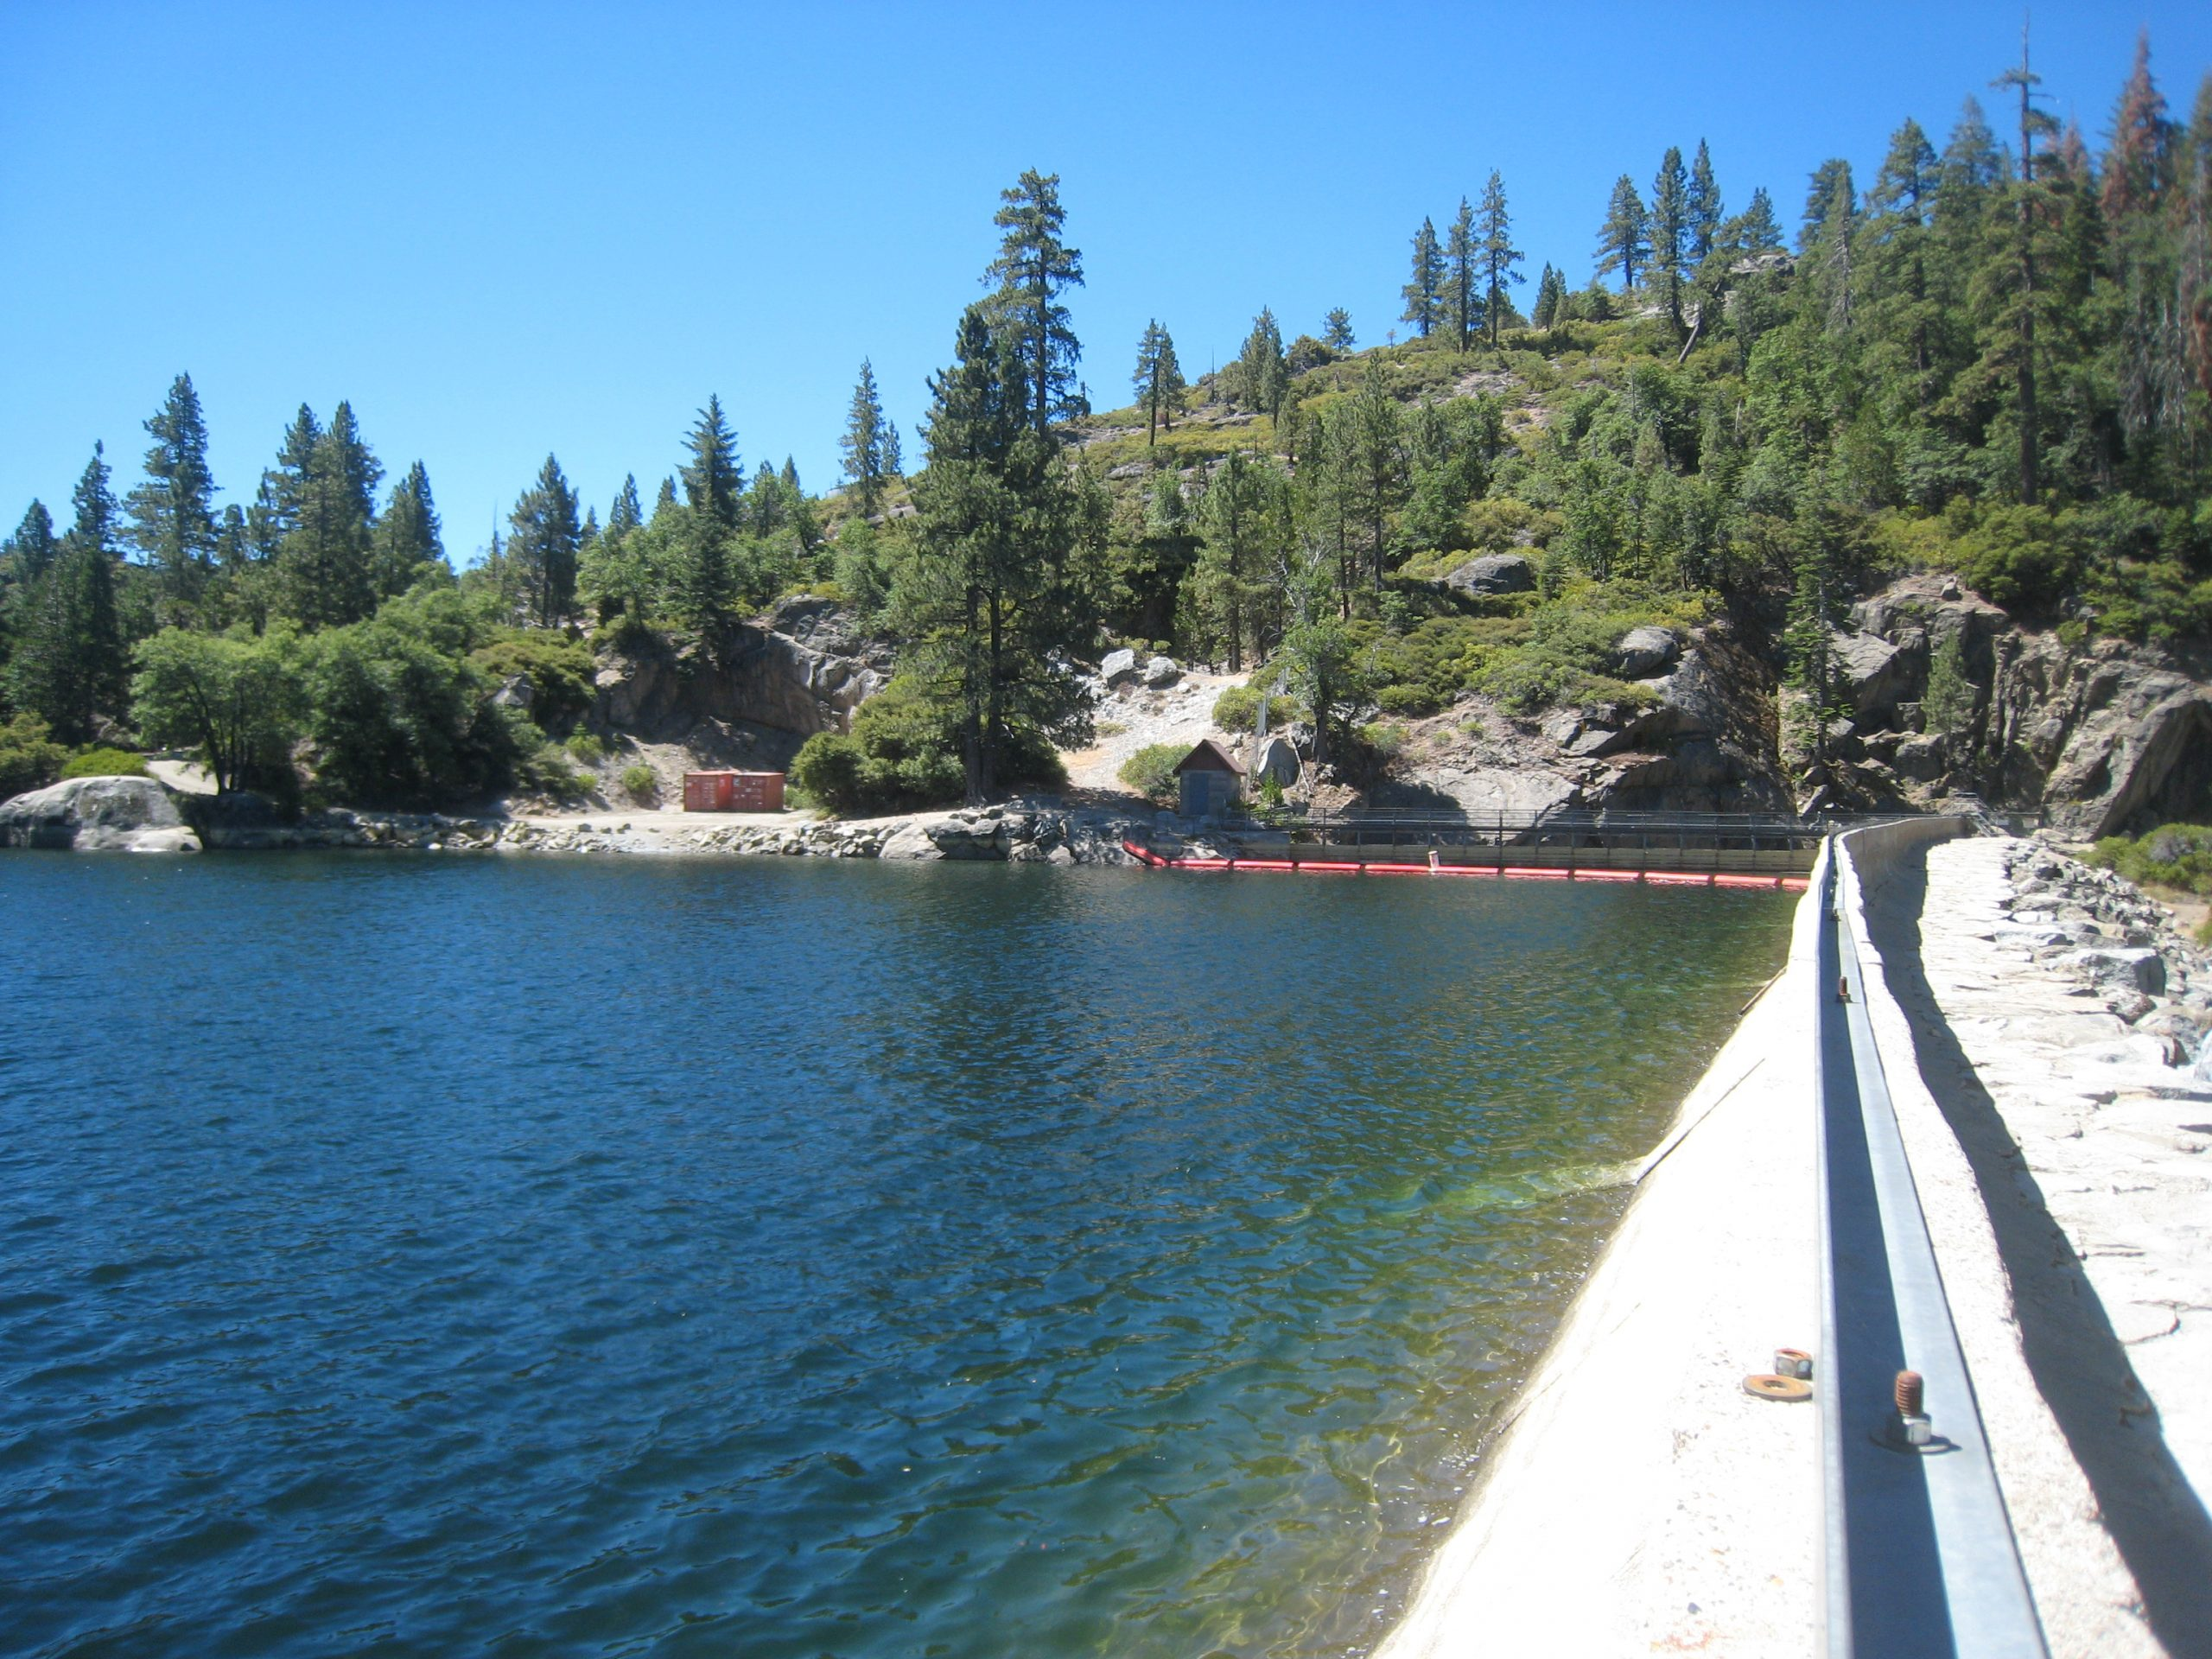 A forebay along the Stanislaus river, another beautful day of work for Sequoia biologists in the Sierra Nevada mountains.